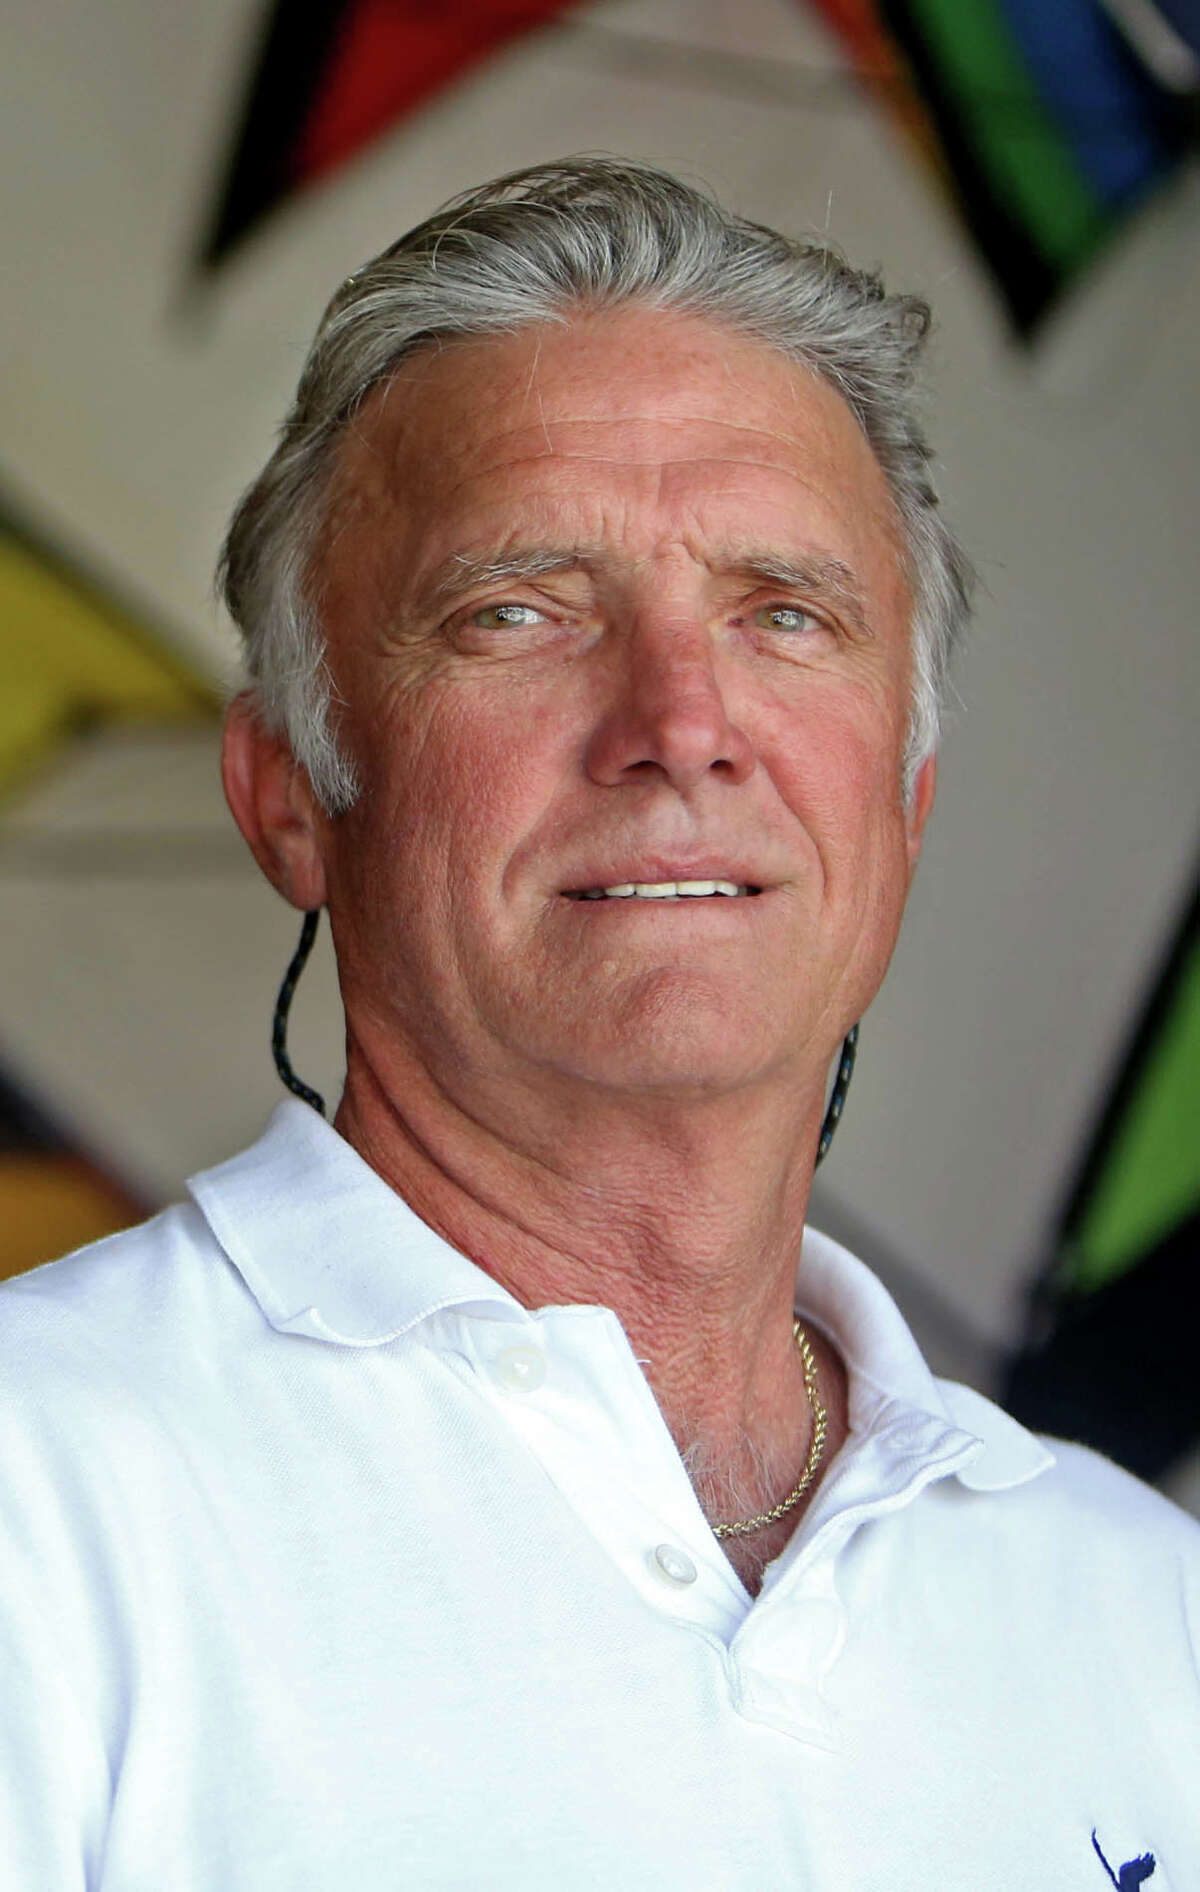 Stephen Newberry owns Kites Unlimited.